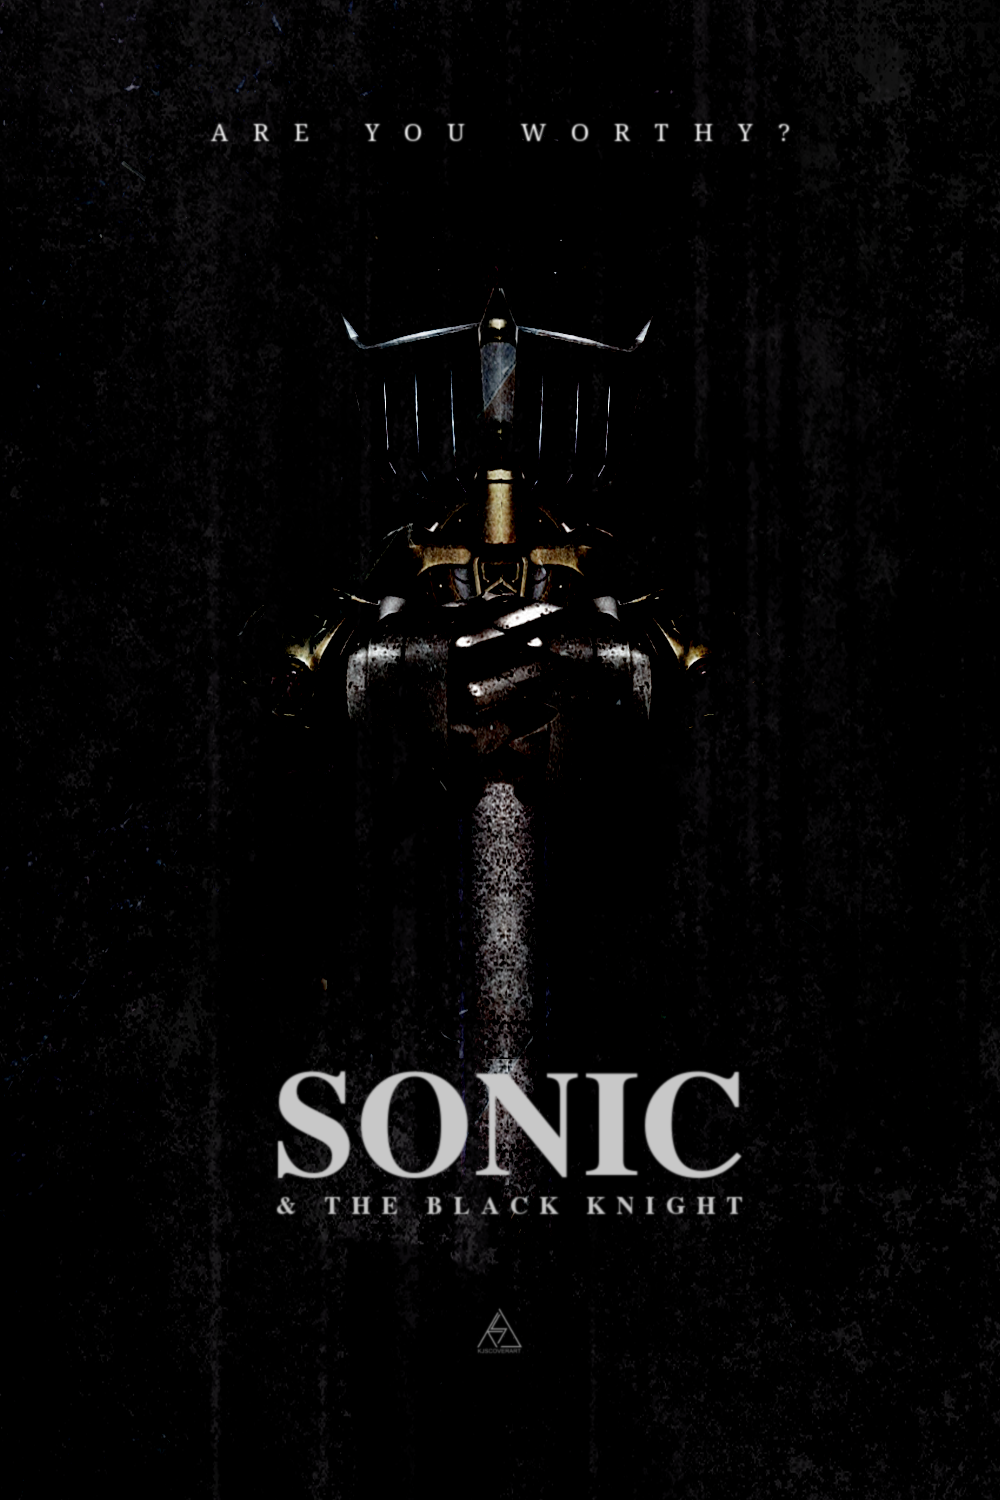 Scrapped Sonic and the Black Knight Poster Found